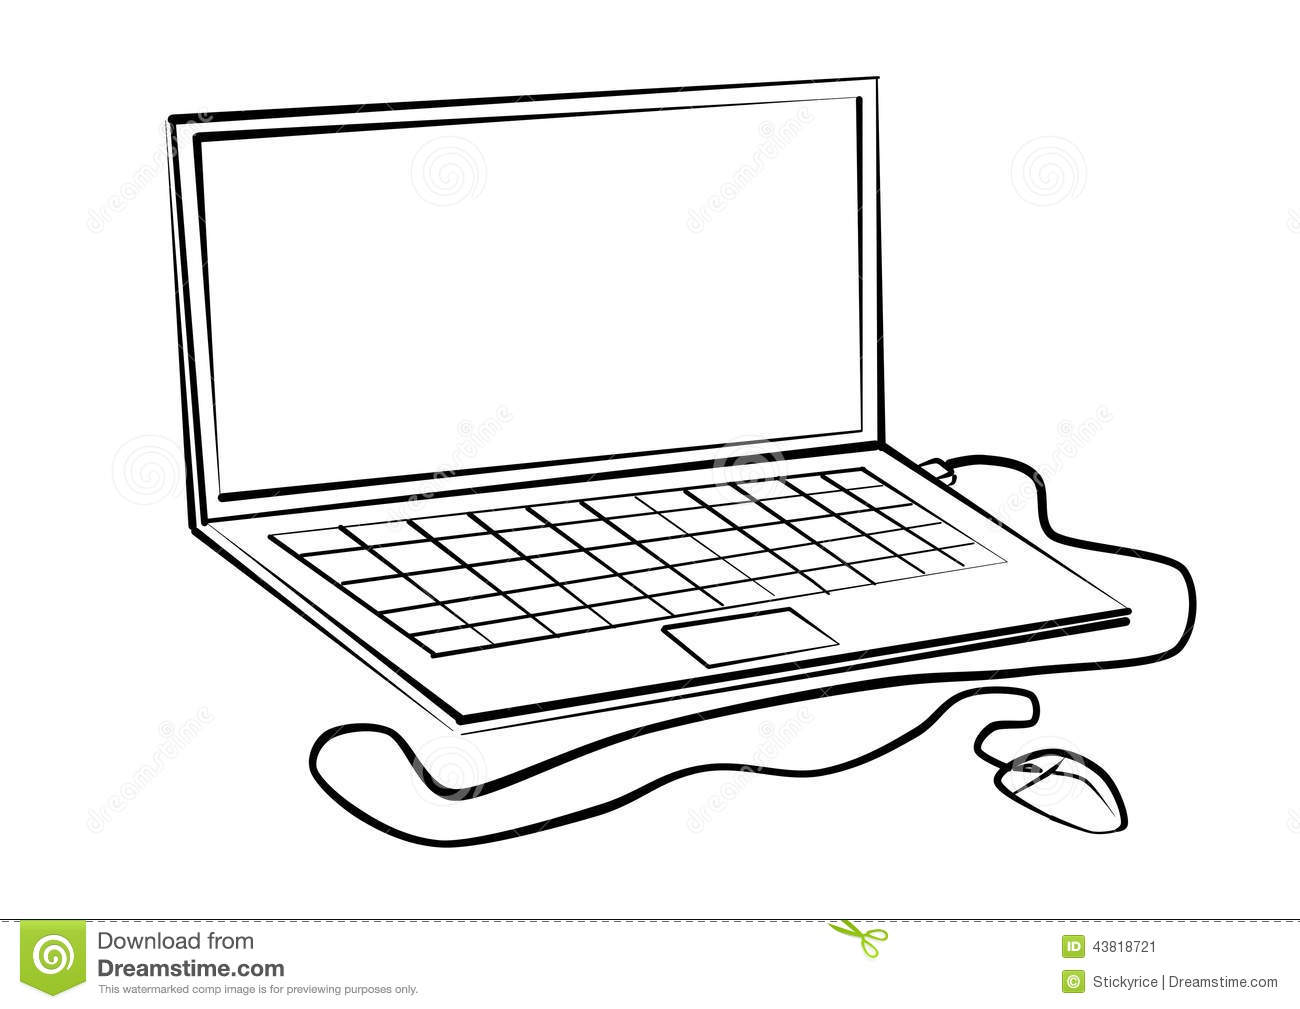 Labtop-line drawings stock image. Image of notebook, line